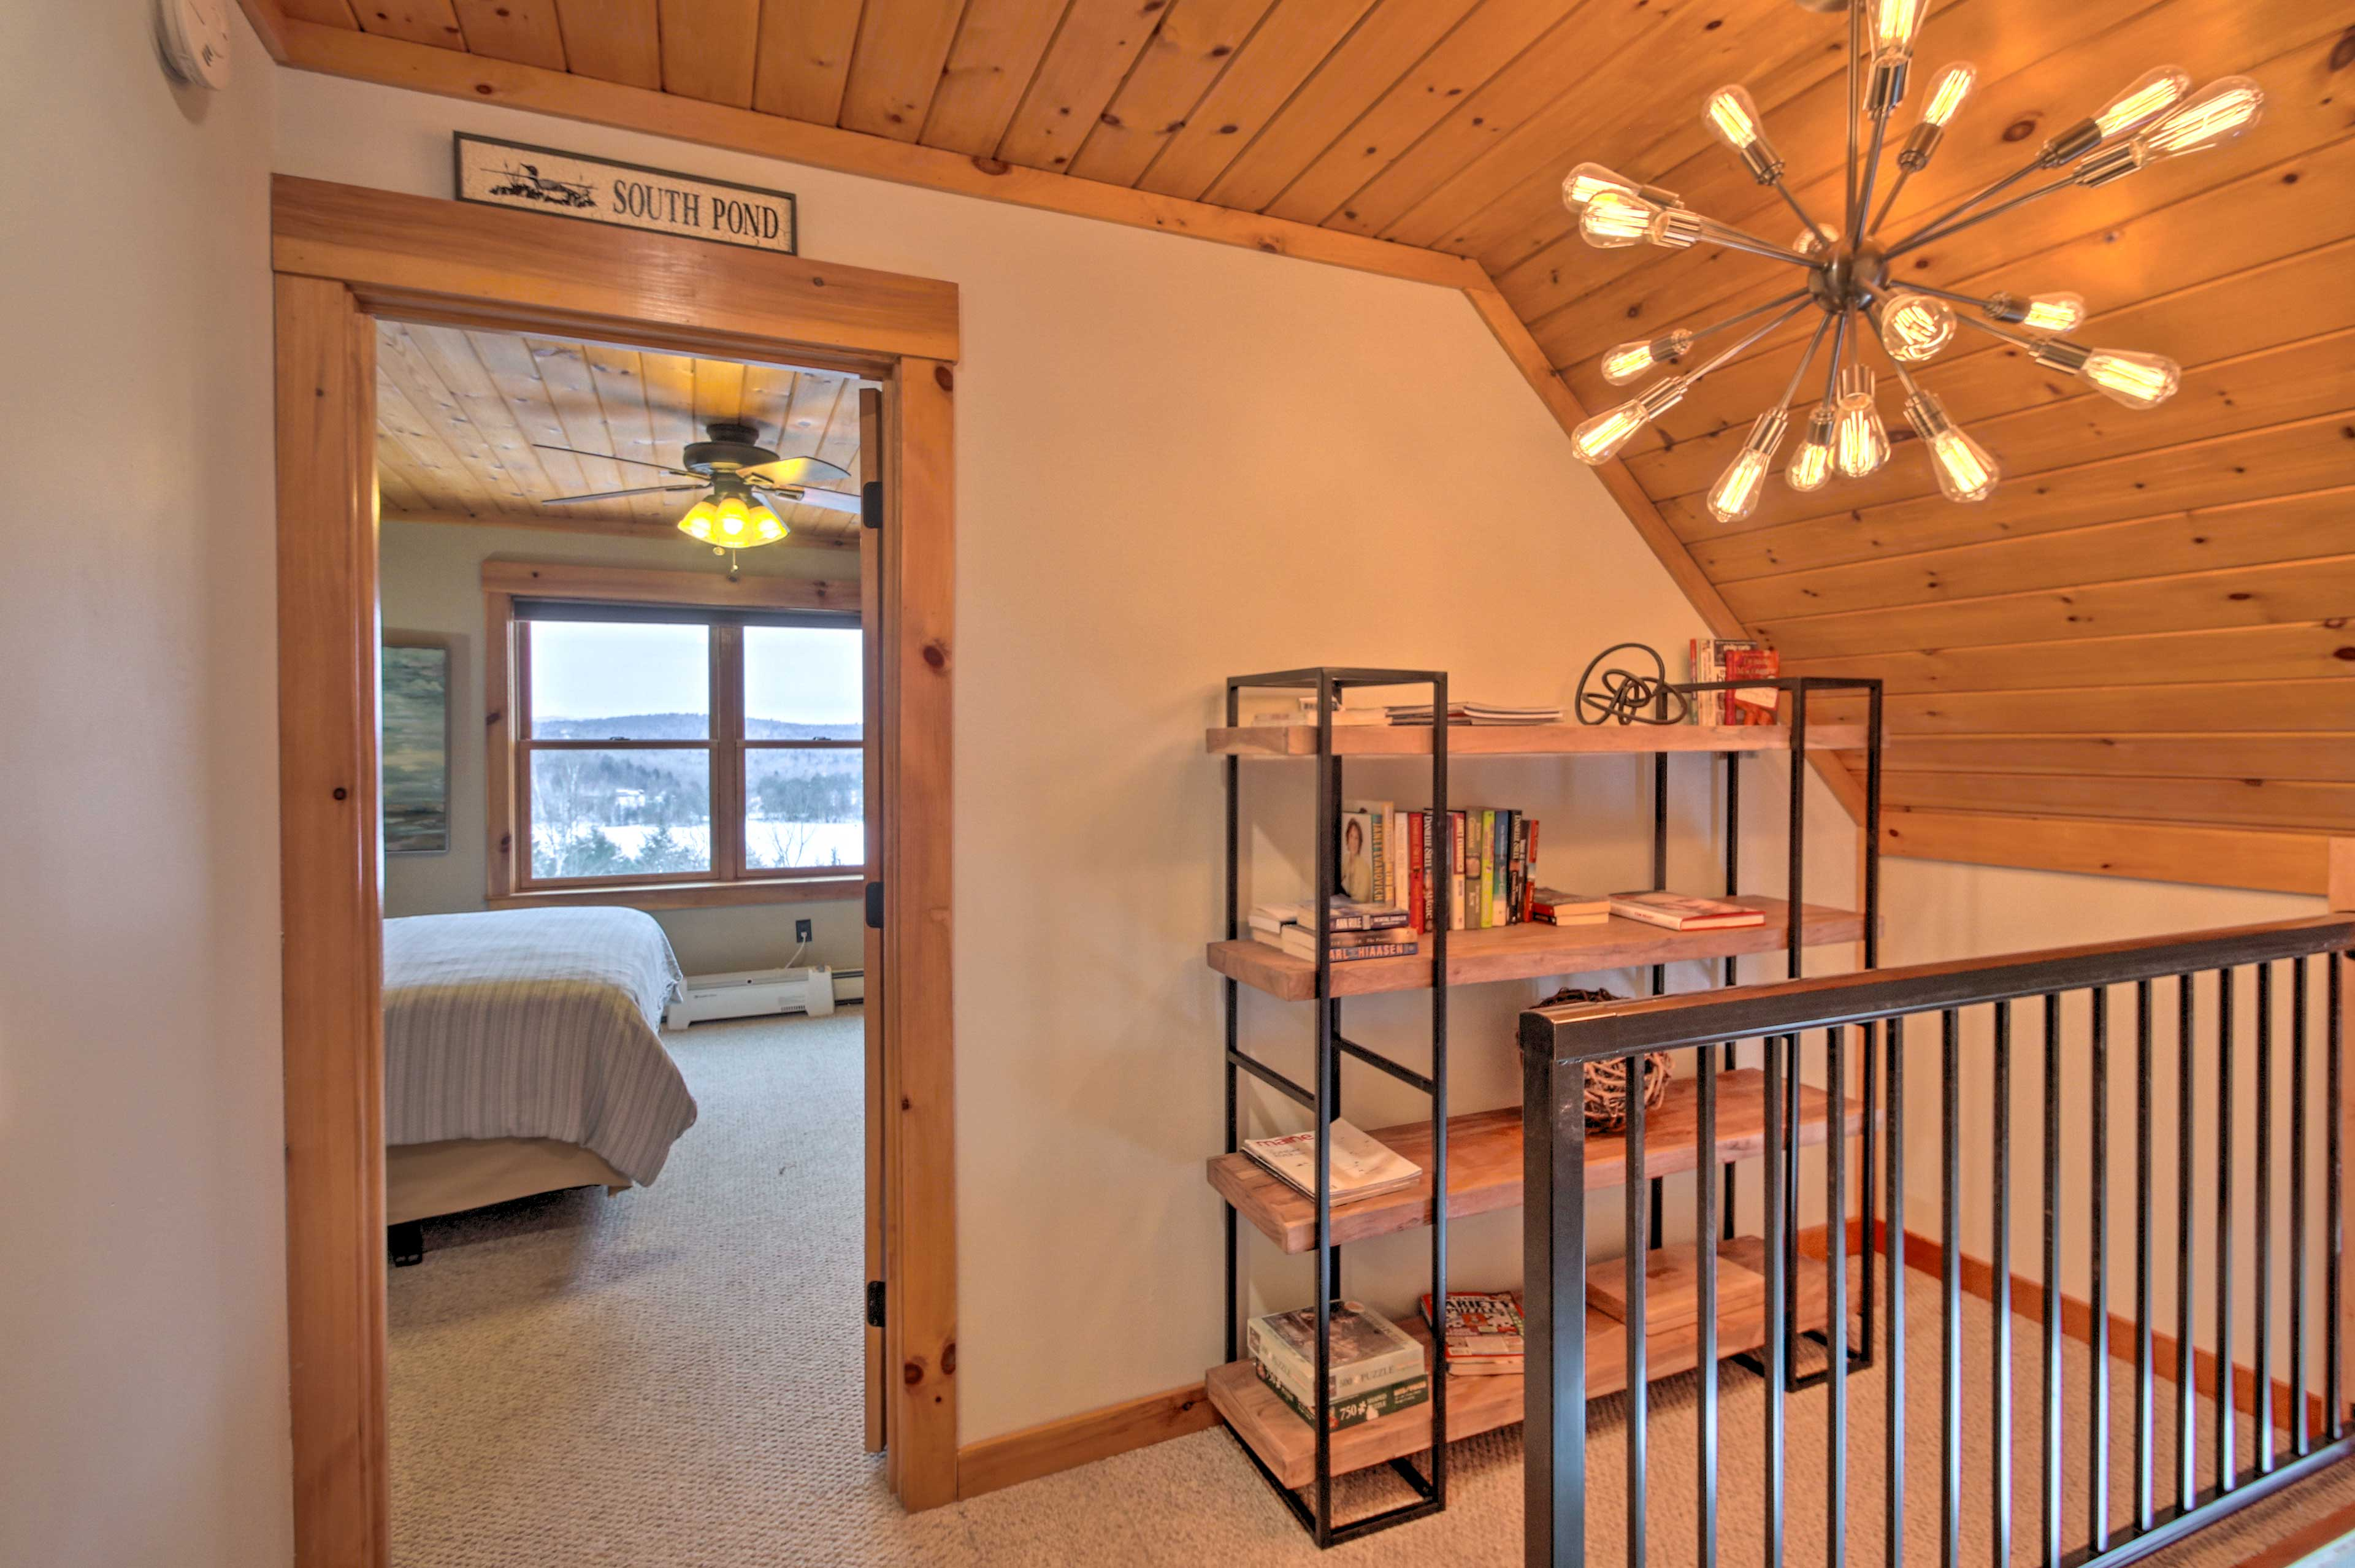 Head upstairs, where you'll find 2 bedrooms.